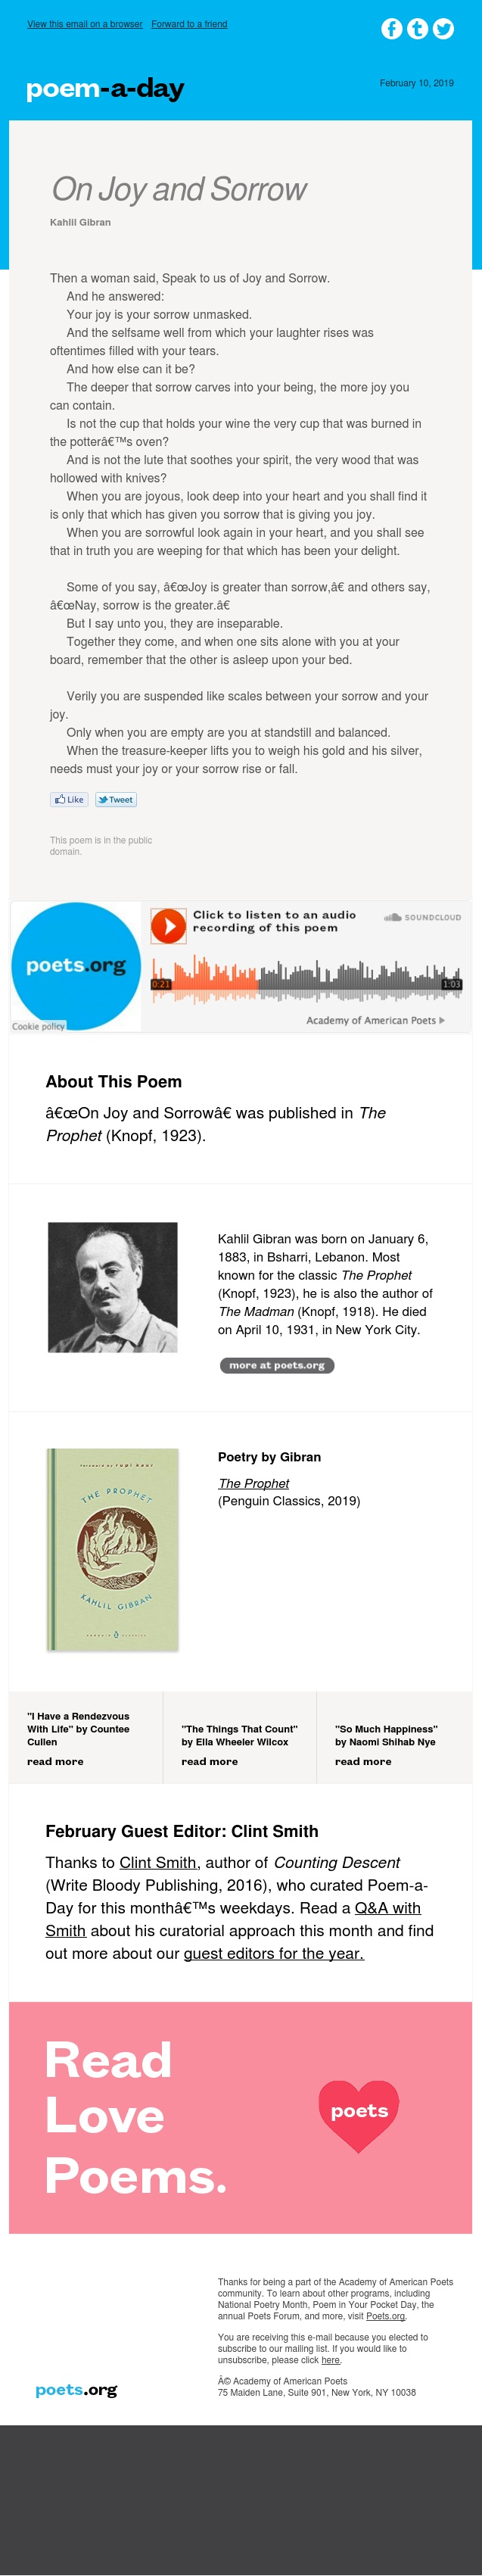 """On Joy and Sorrow"" by Kahlil Gibran"